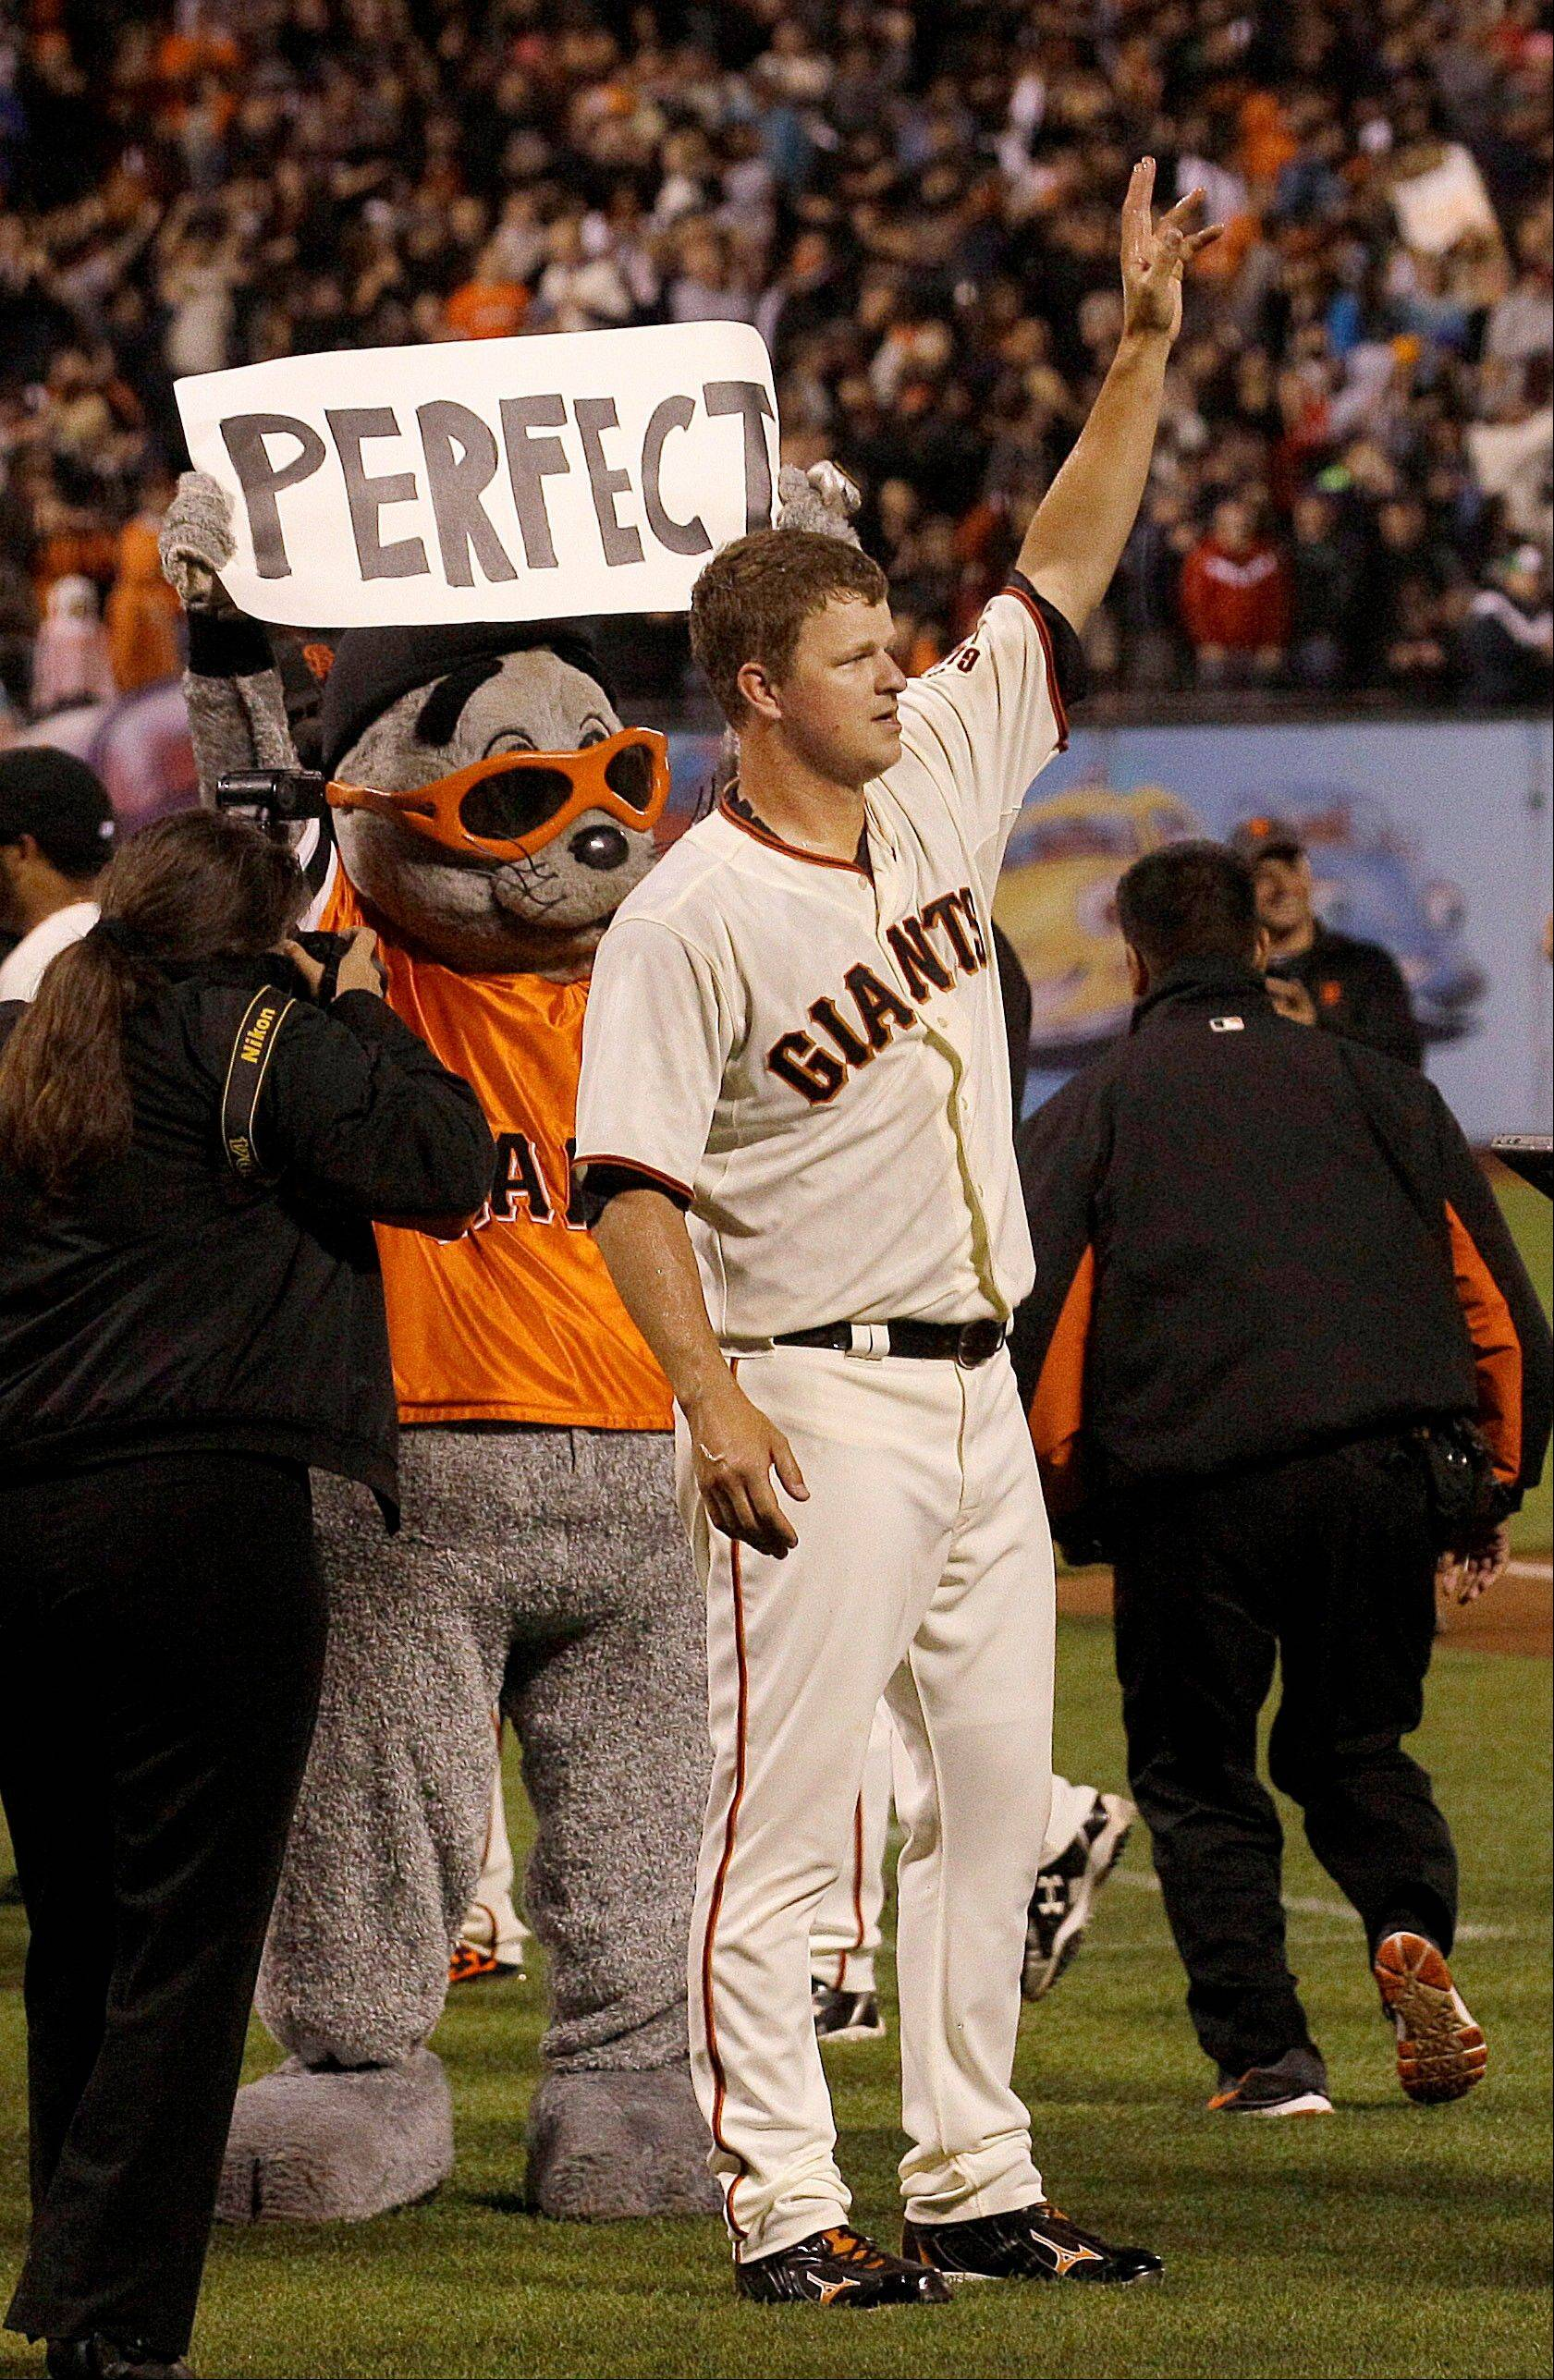 Images: Matt Cain's perfect game